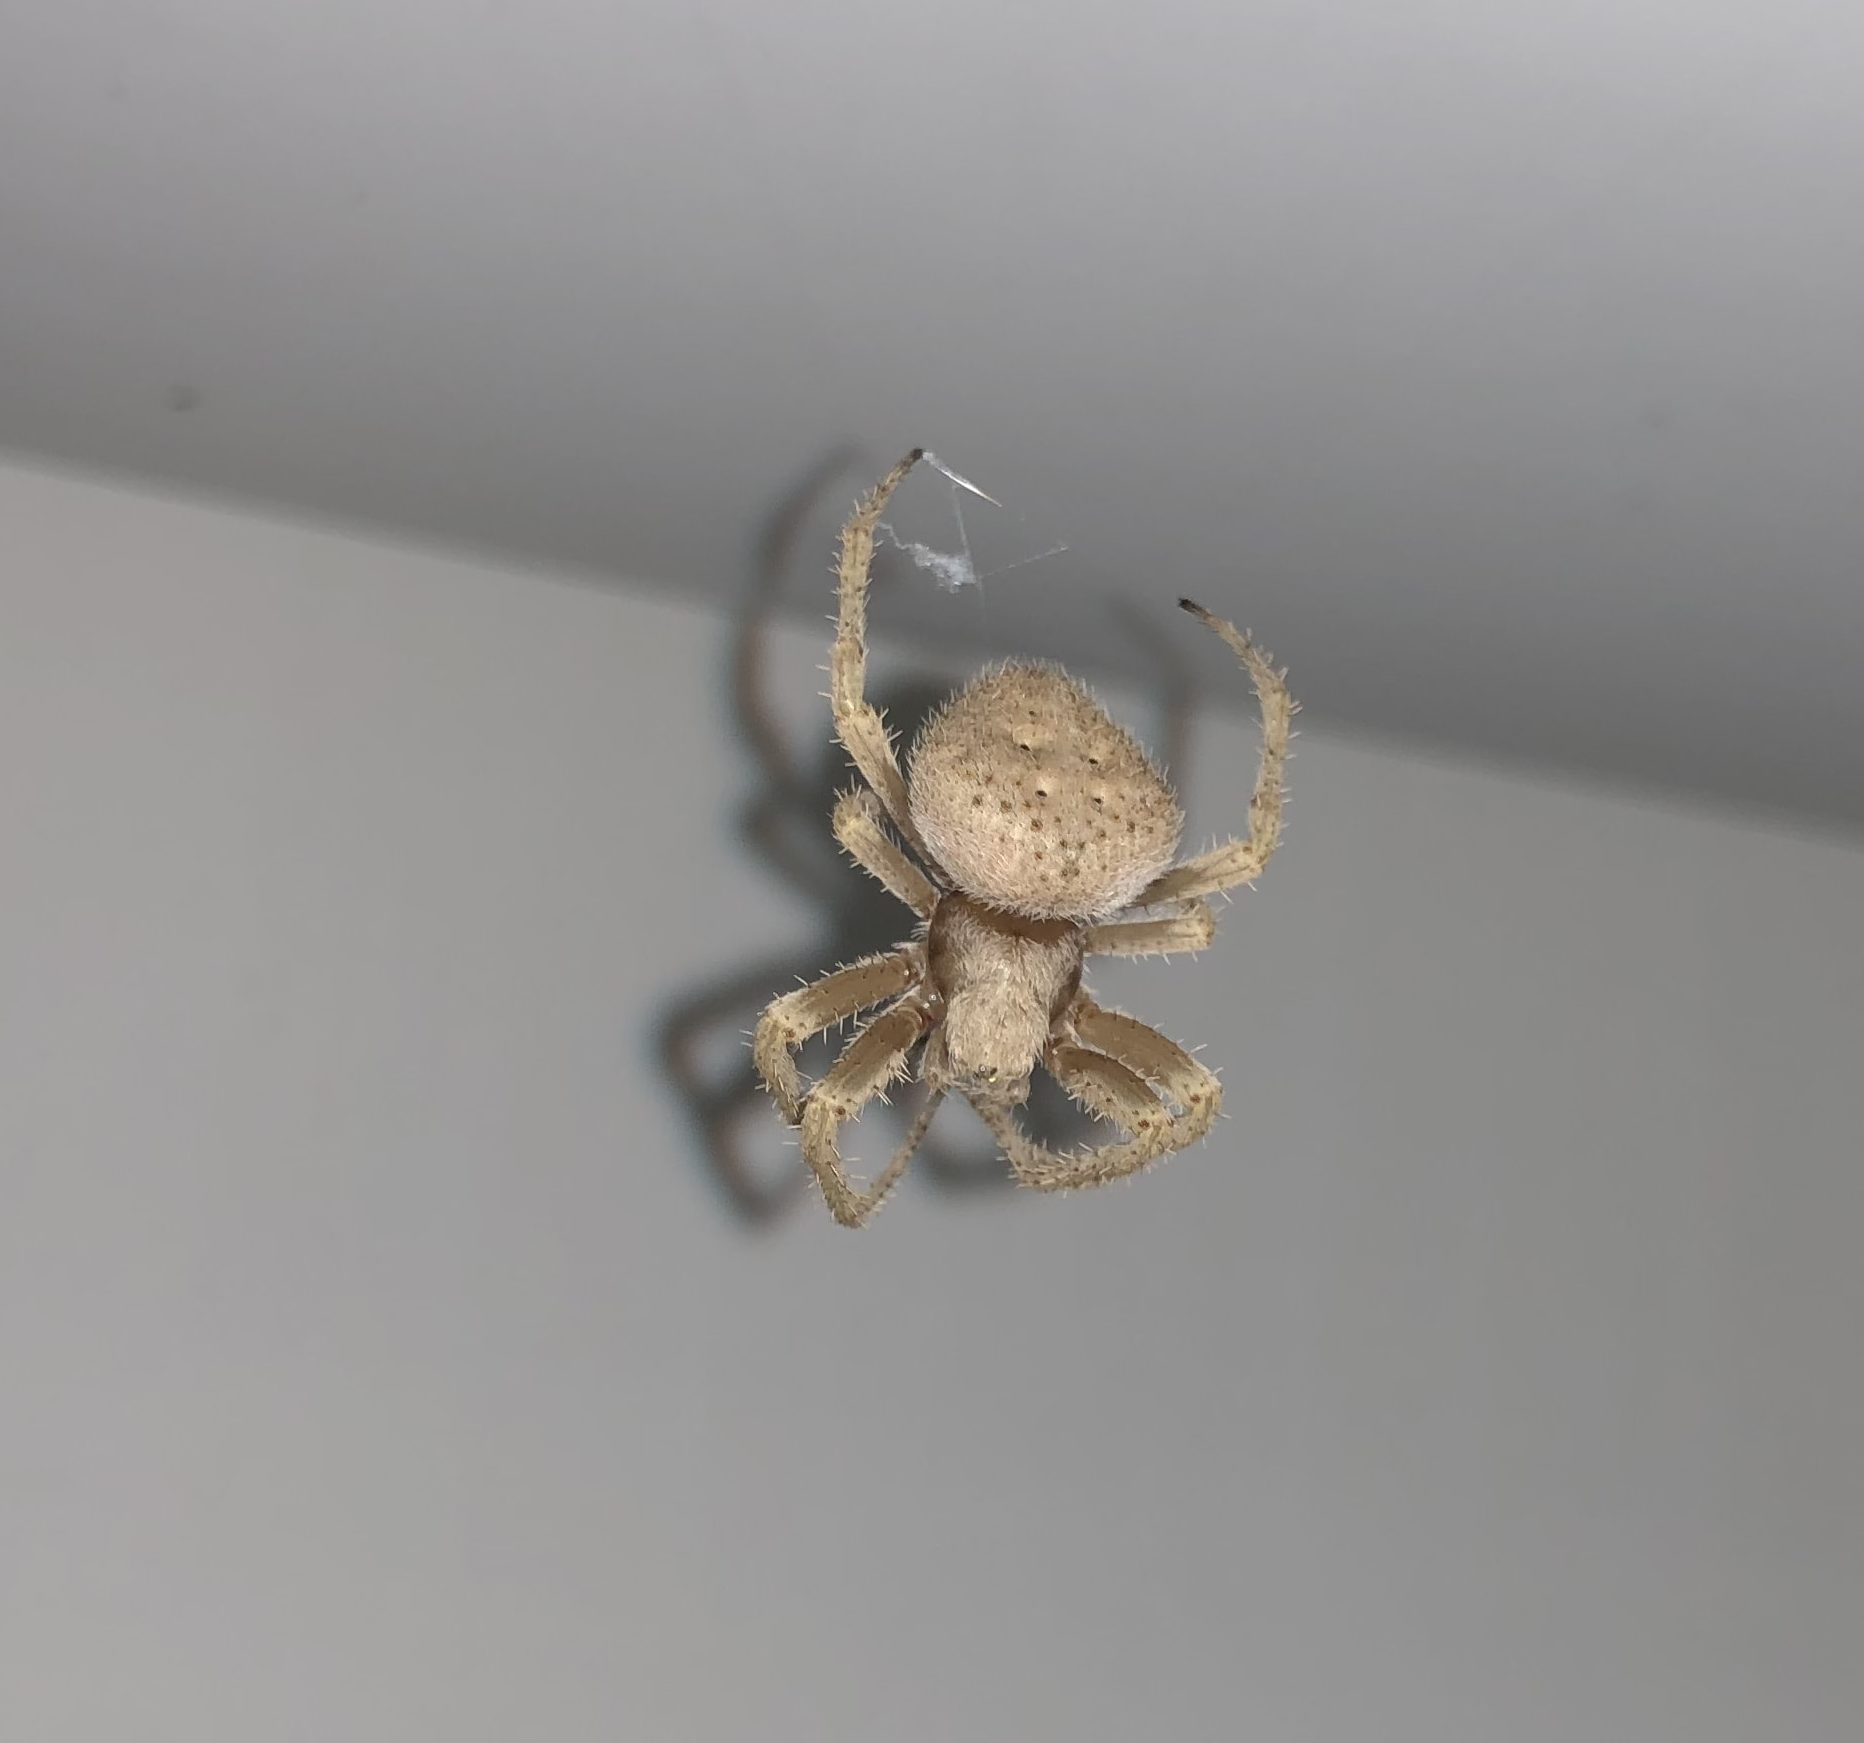 Picture of Araneidae (Orb-weavers) - Dorsal,Webs